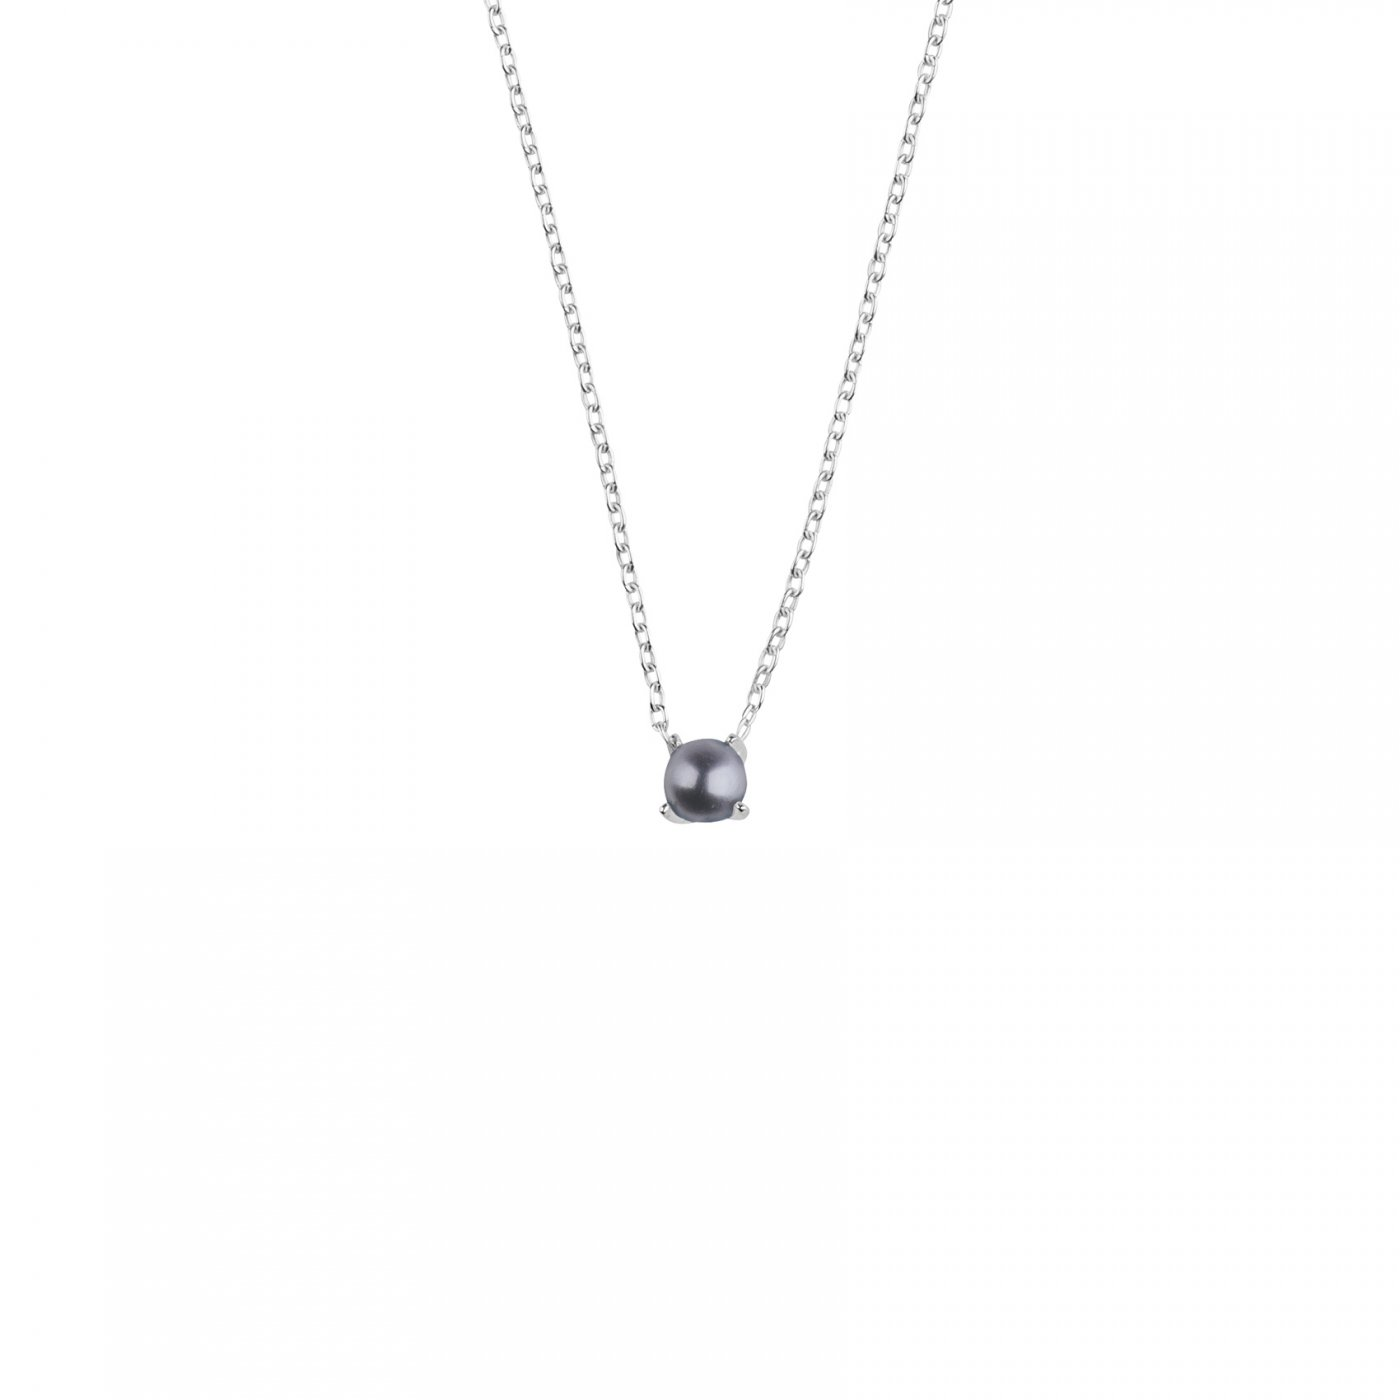 petite-pearl-necklace-midnight-zoom-1400x1400